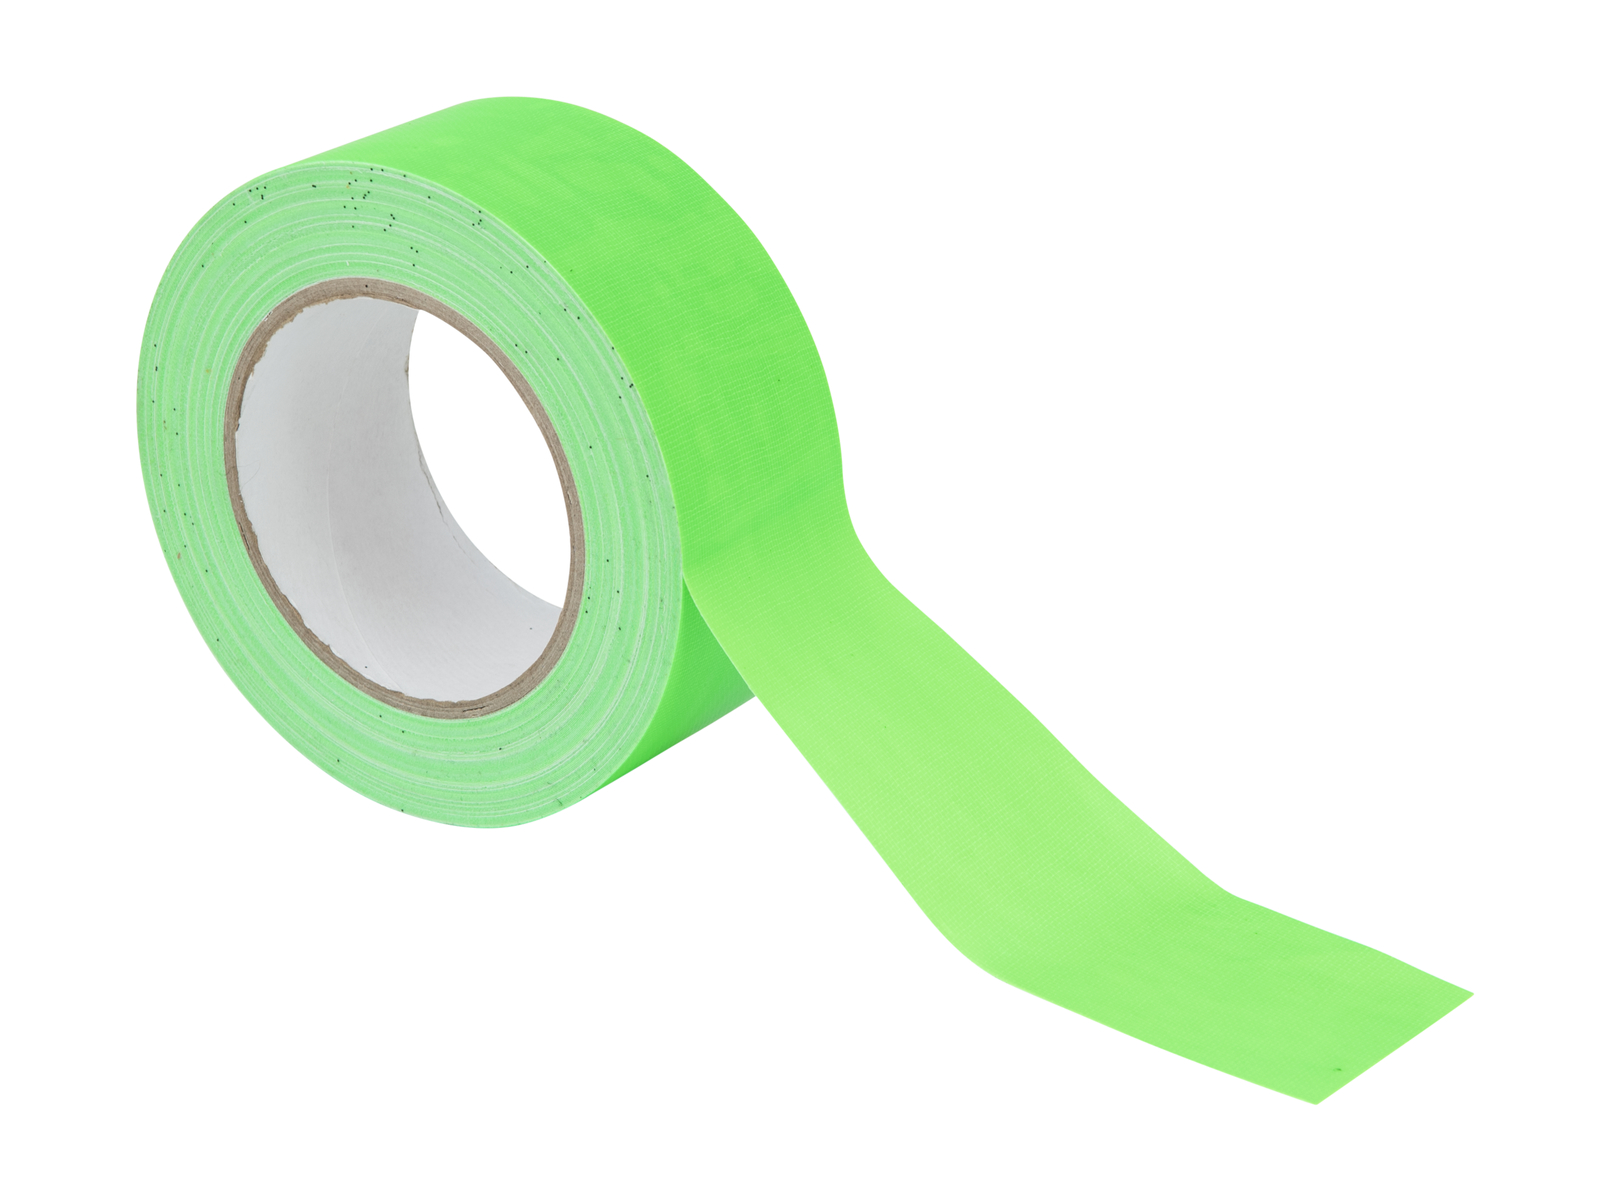 ACCESSORY Gaffa Tape 50mm x 25m neongrün UV-aktiv